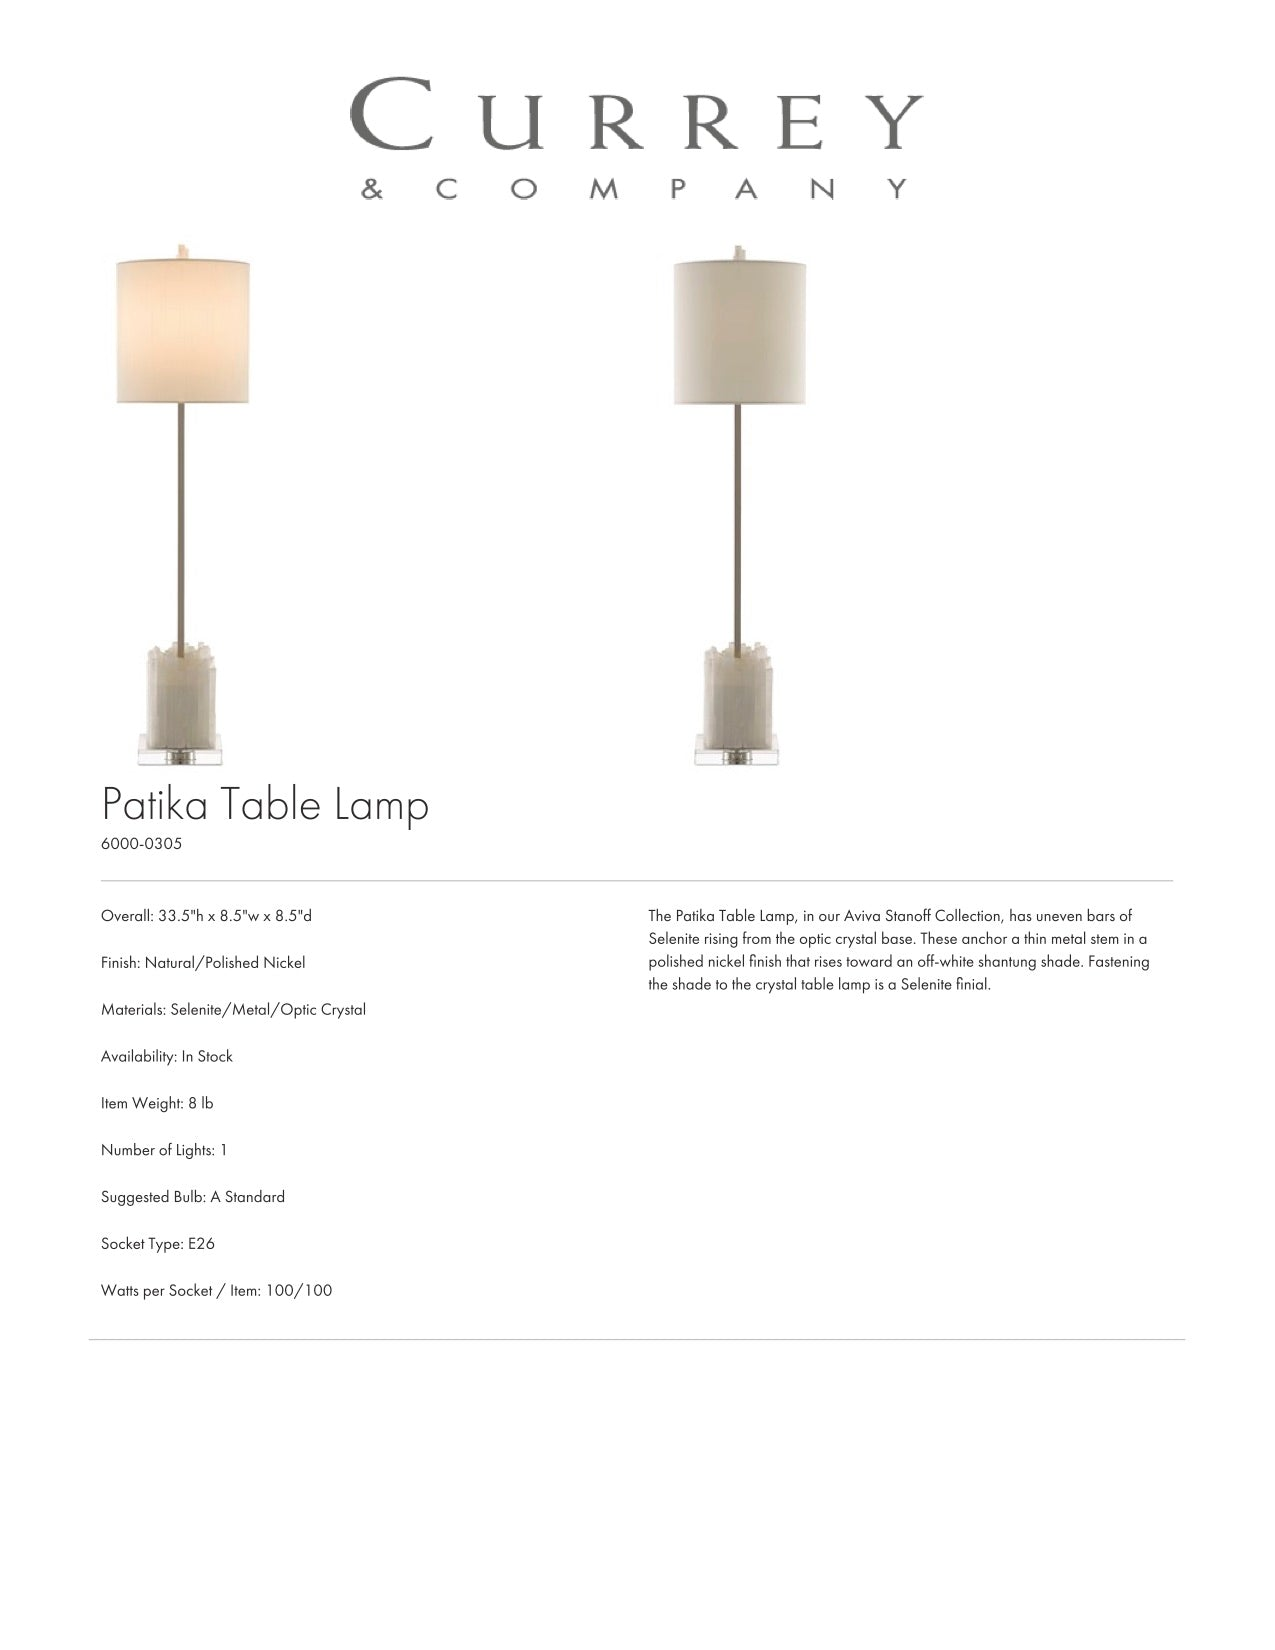 Currey & Company Patika Table Lamp Tearsheet